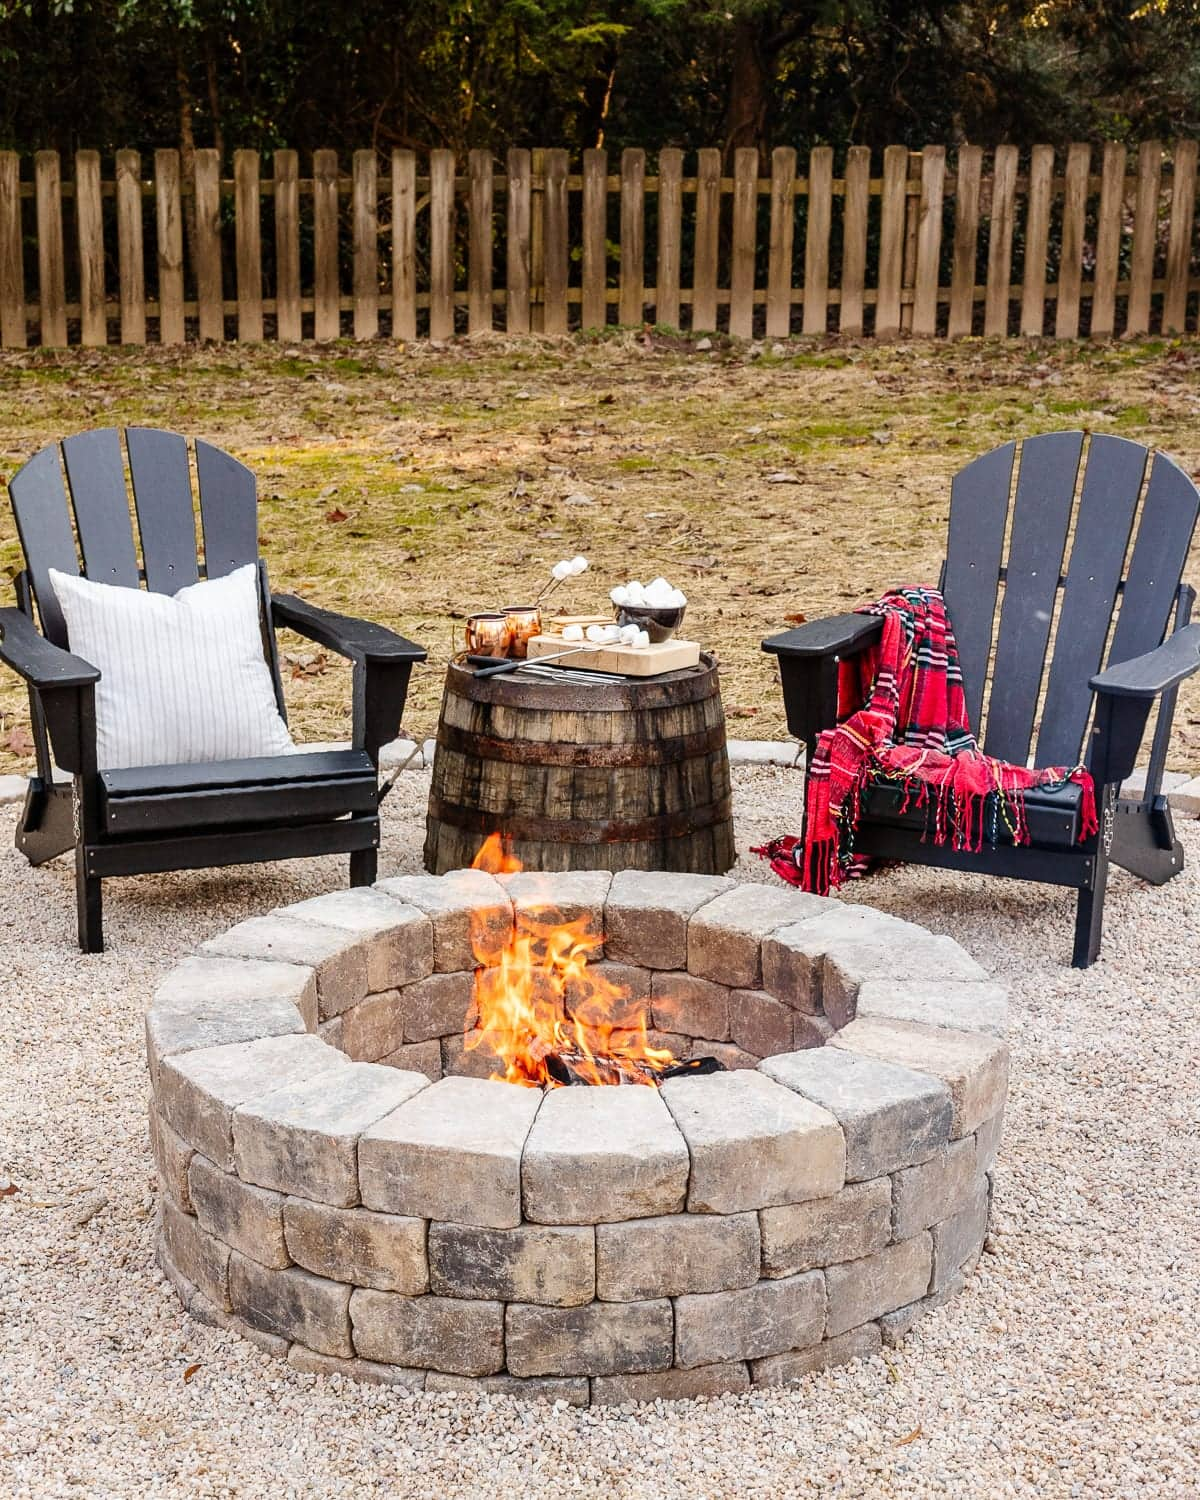 DIY fire pit with stone and pea gravel surrounded by adirondack chairs